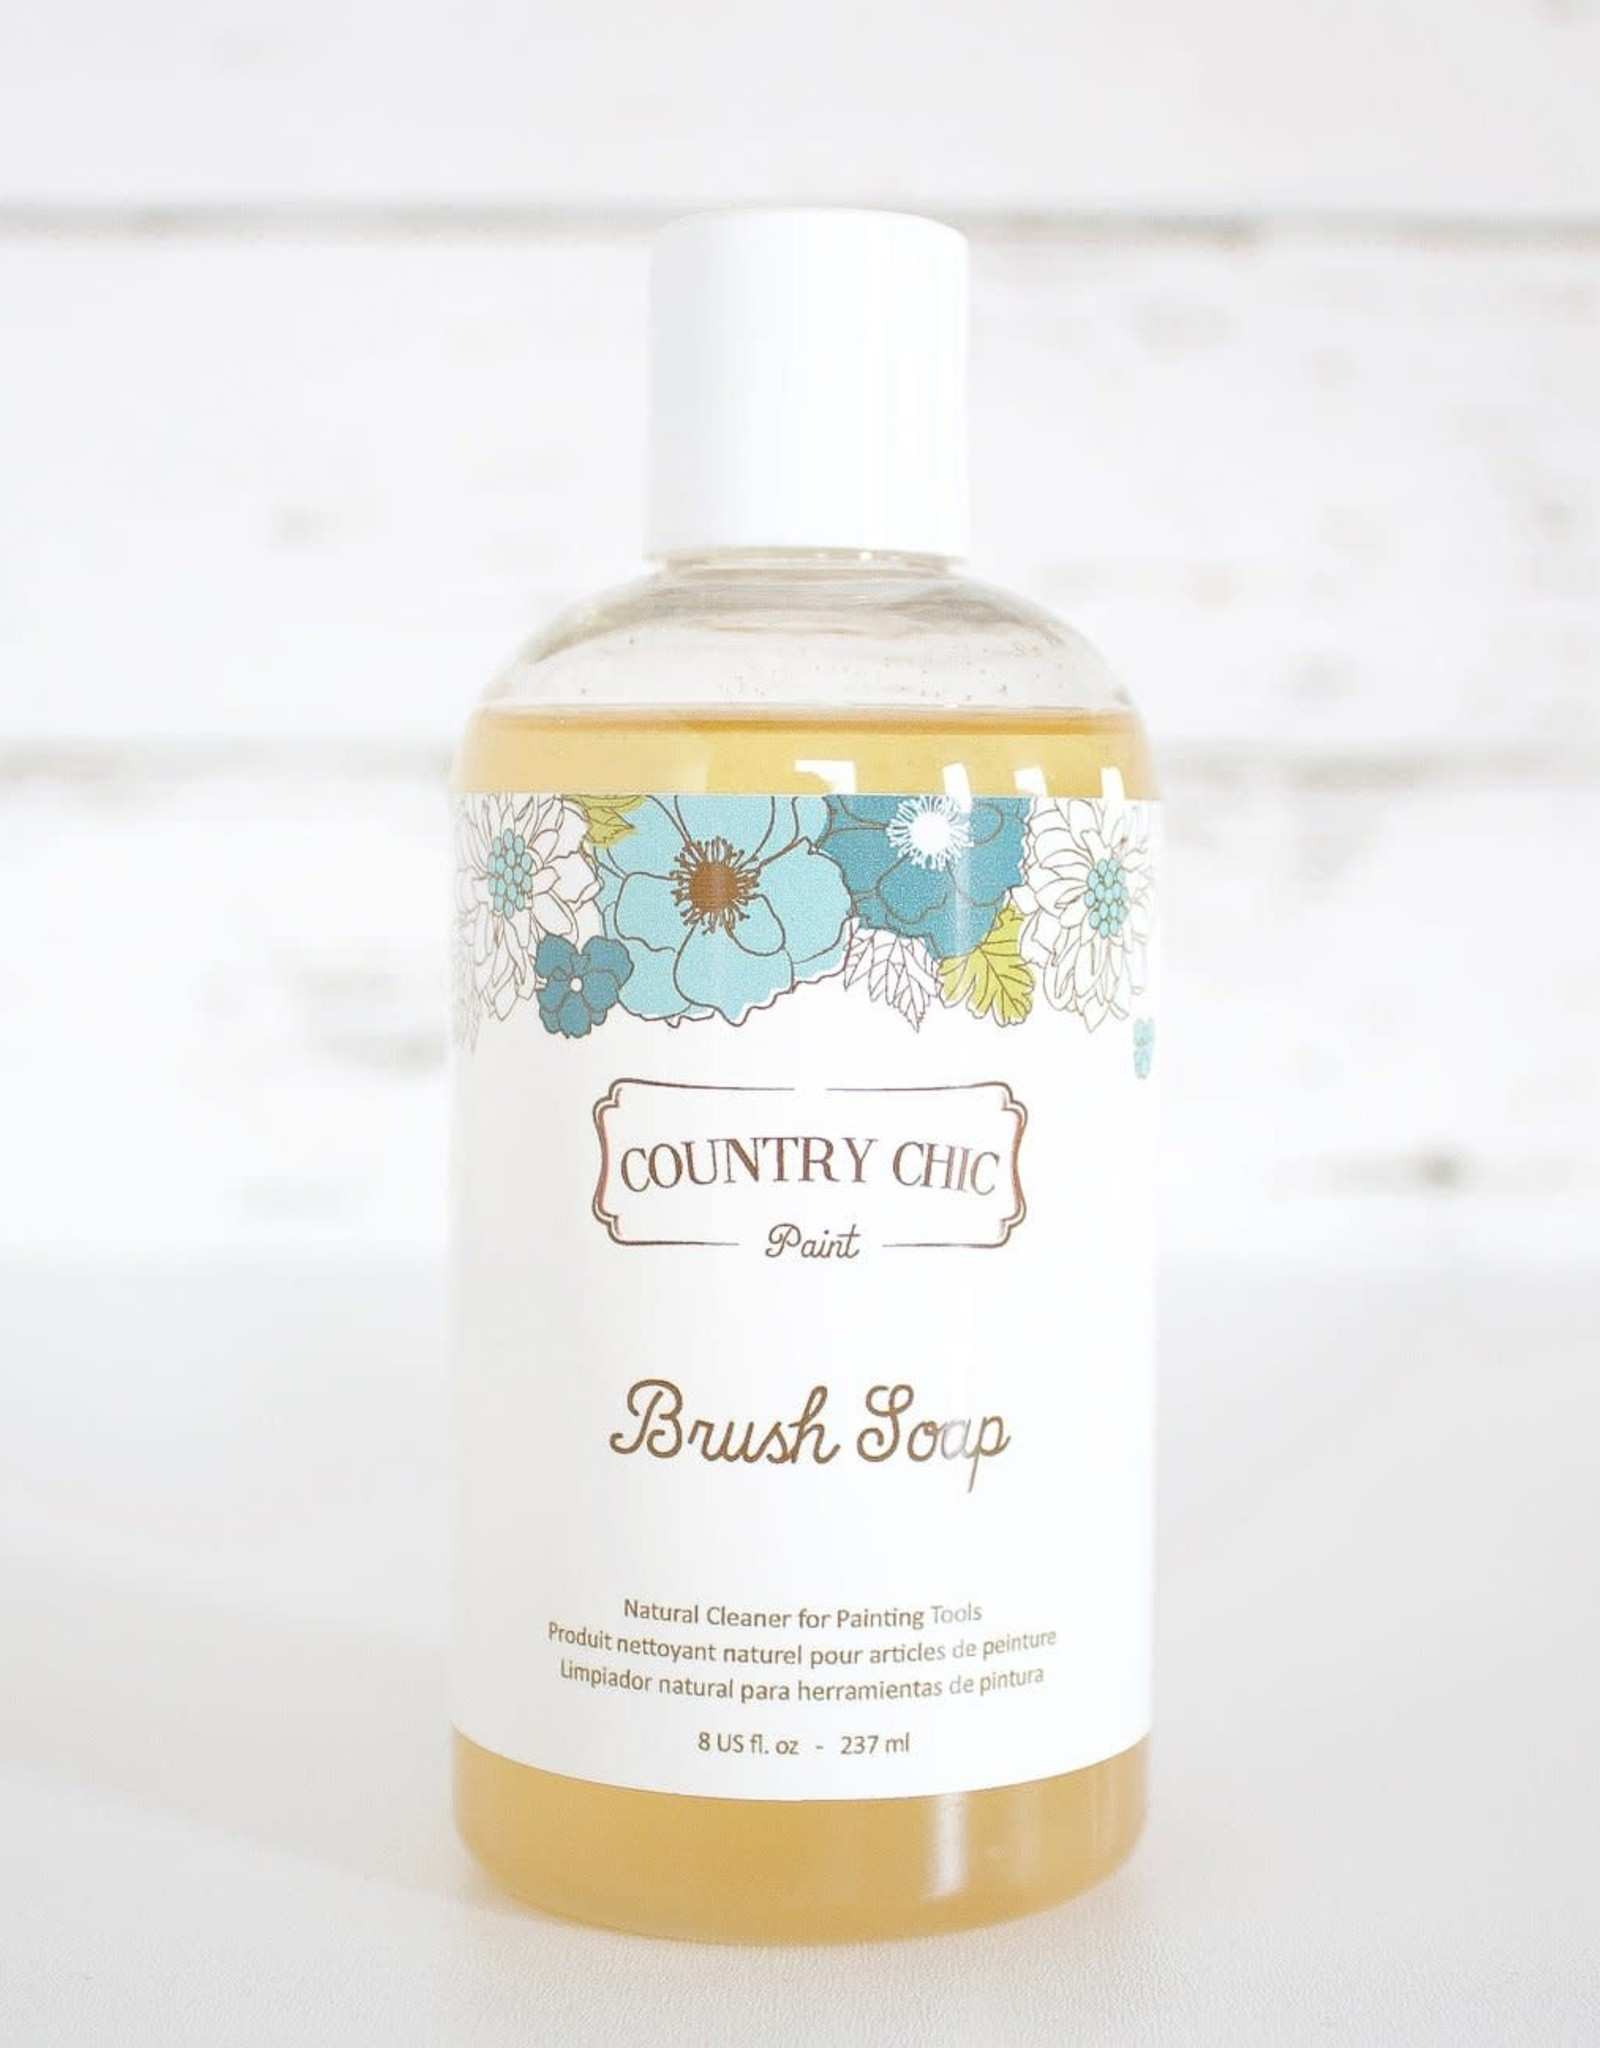 Country Chic Brush Soap